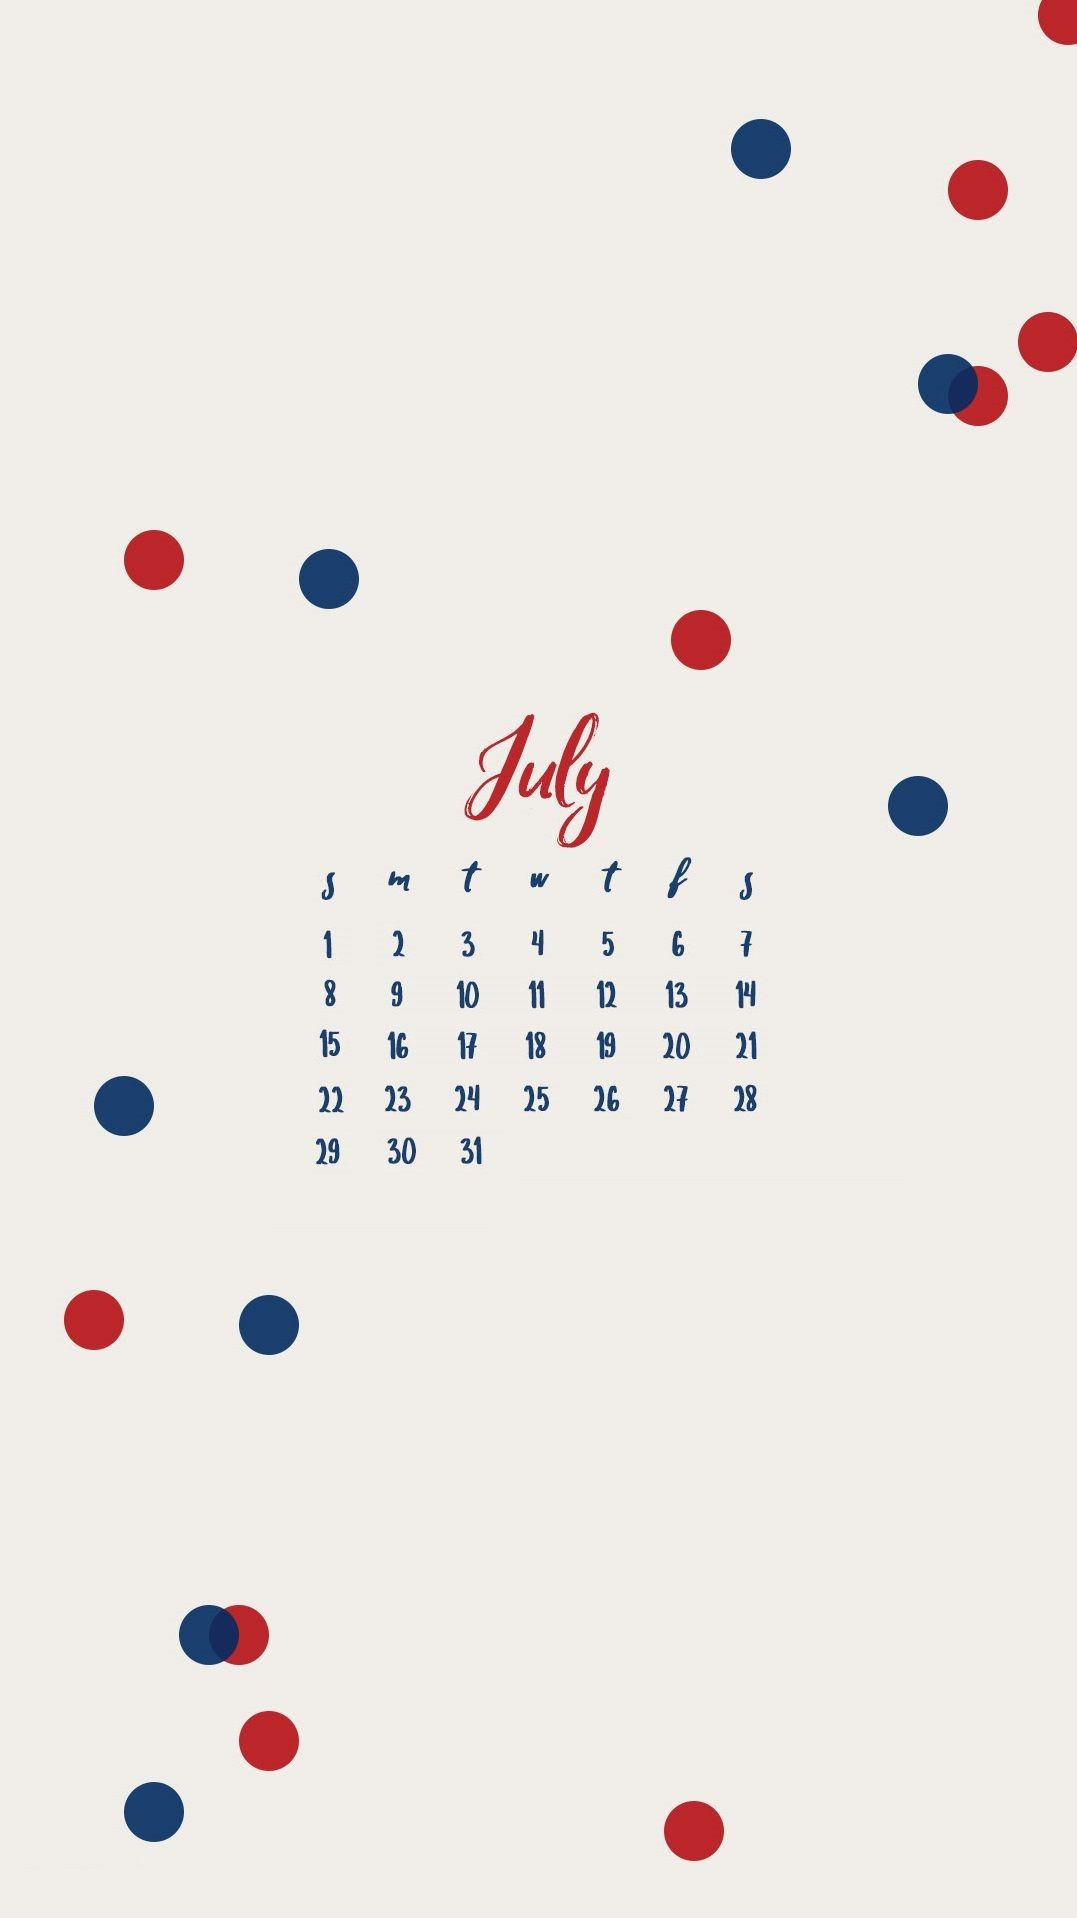 july 2019 iphone calendar design::July 2019 iPhone Calendar Wallpaper